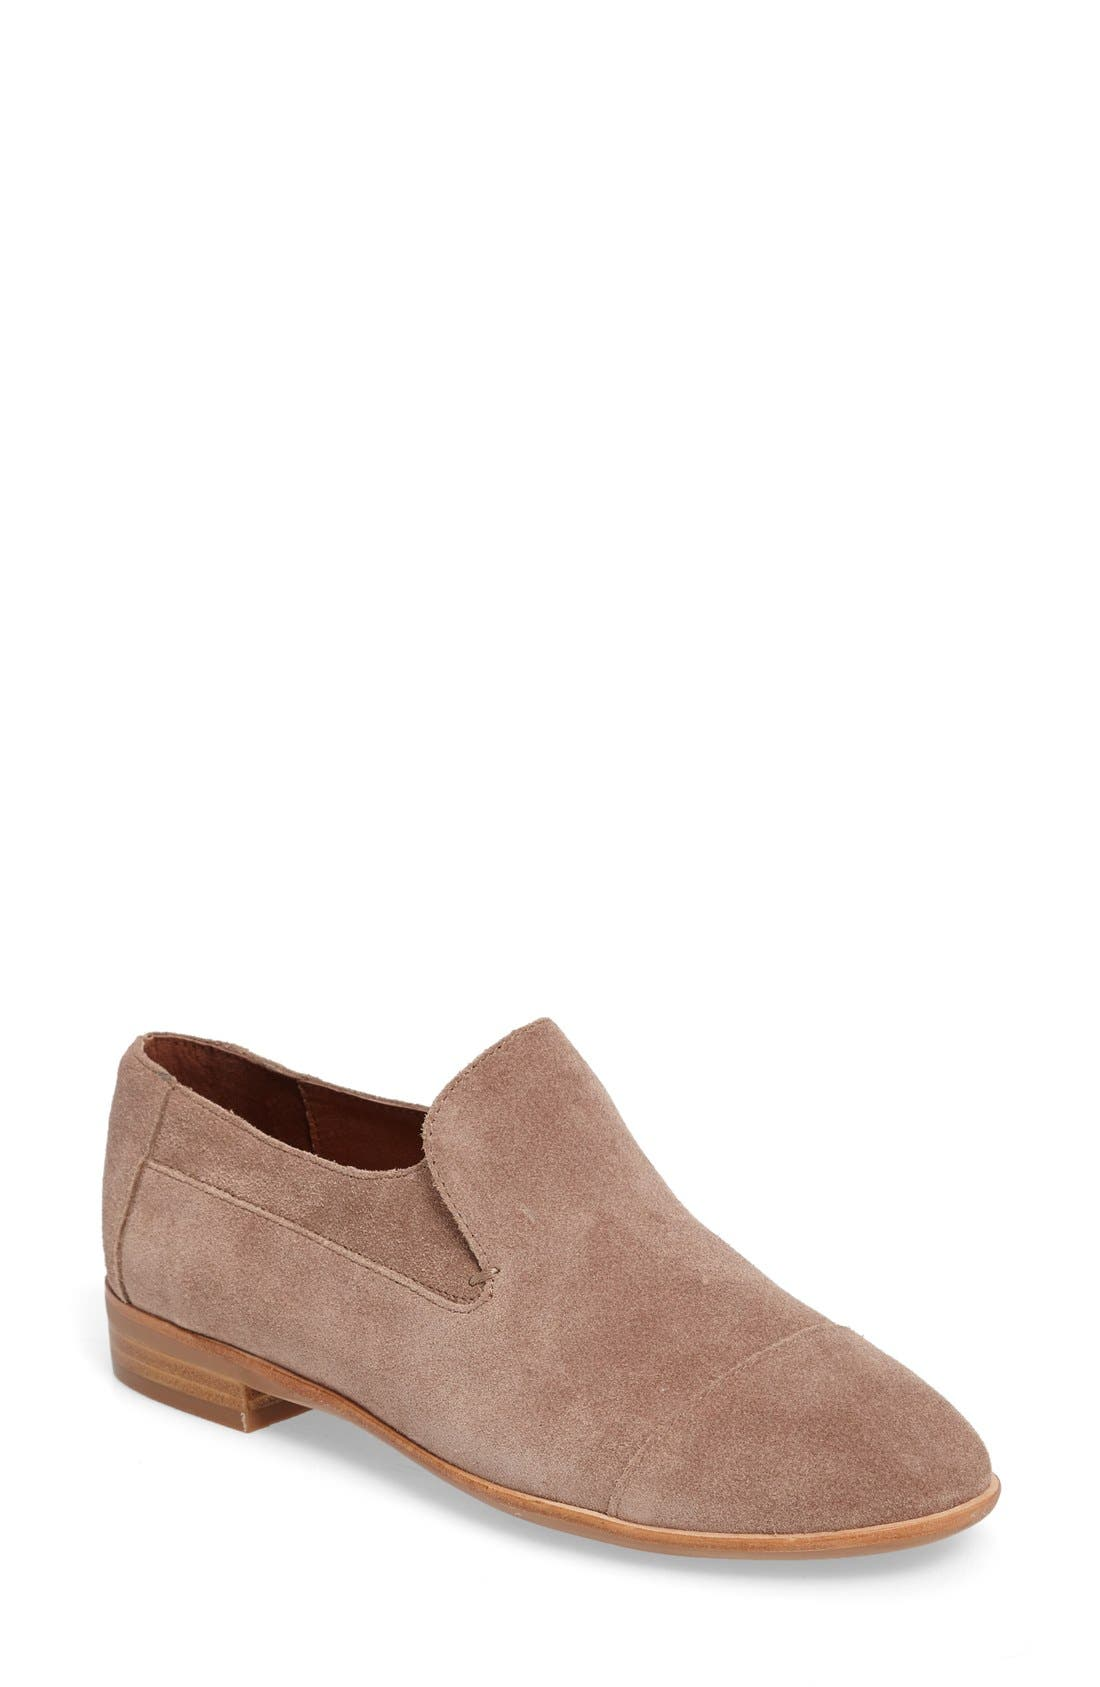 Main Image - Jeffrey Campbell 'Bryant' Cap Toe Loafer (Women)